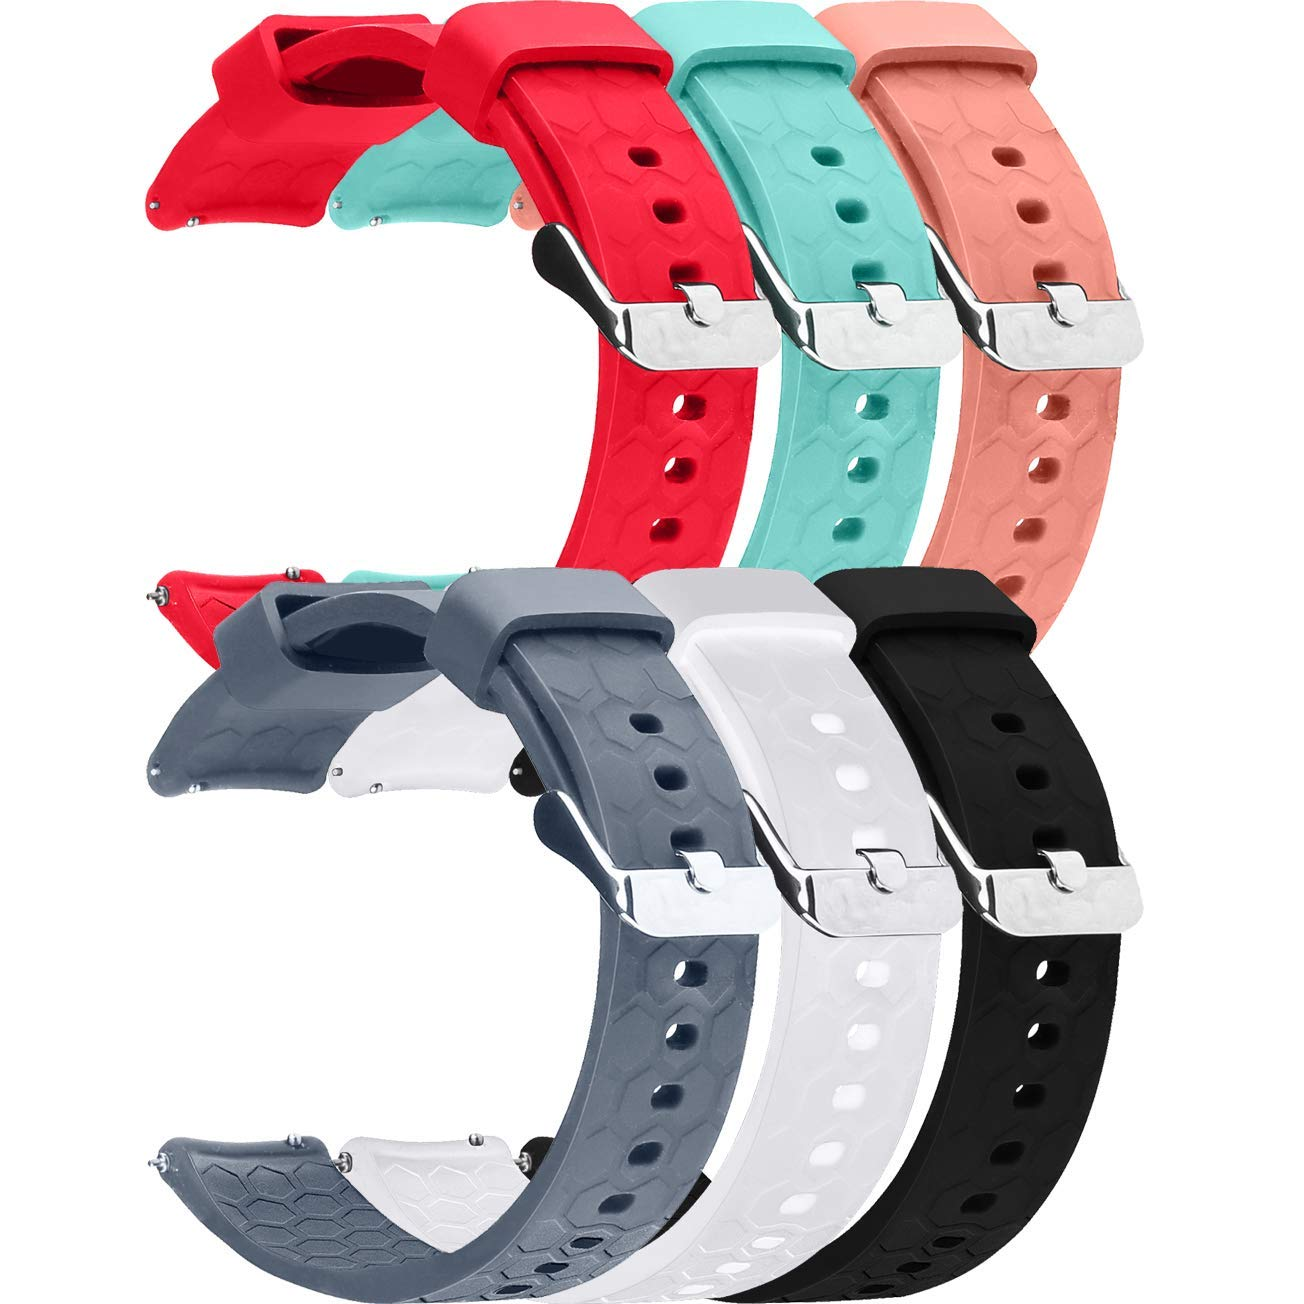 6pcs 20mm Replacement Silicone Bands for Amazfit Bip Smartwatch